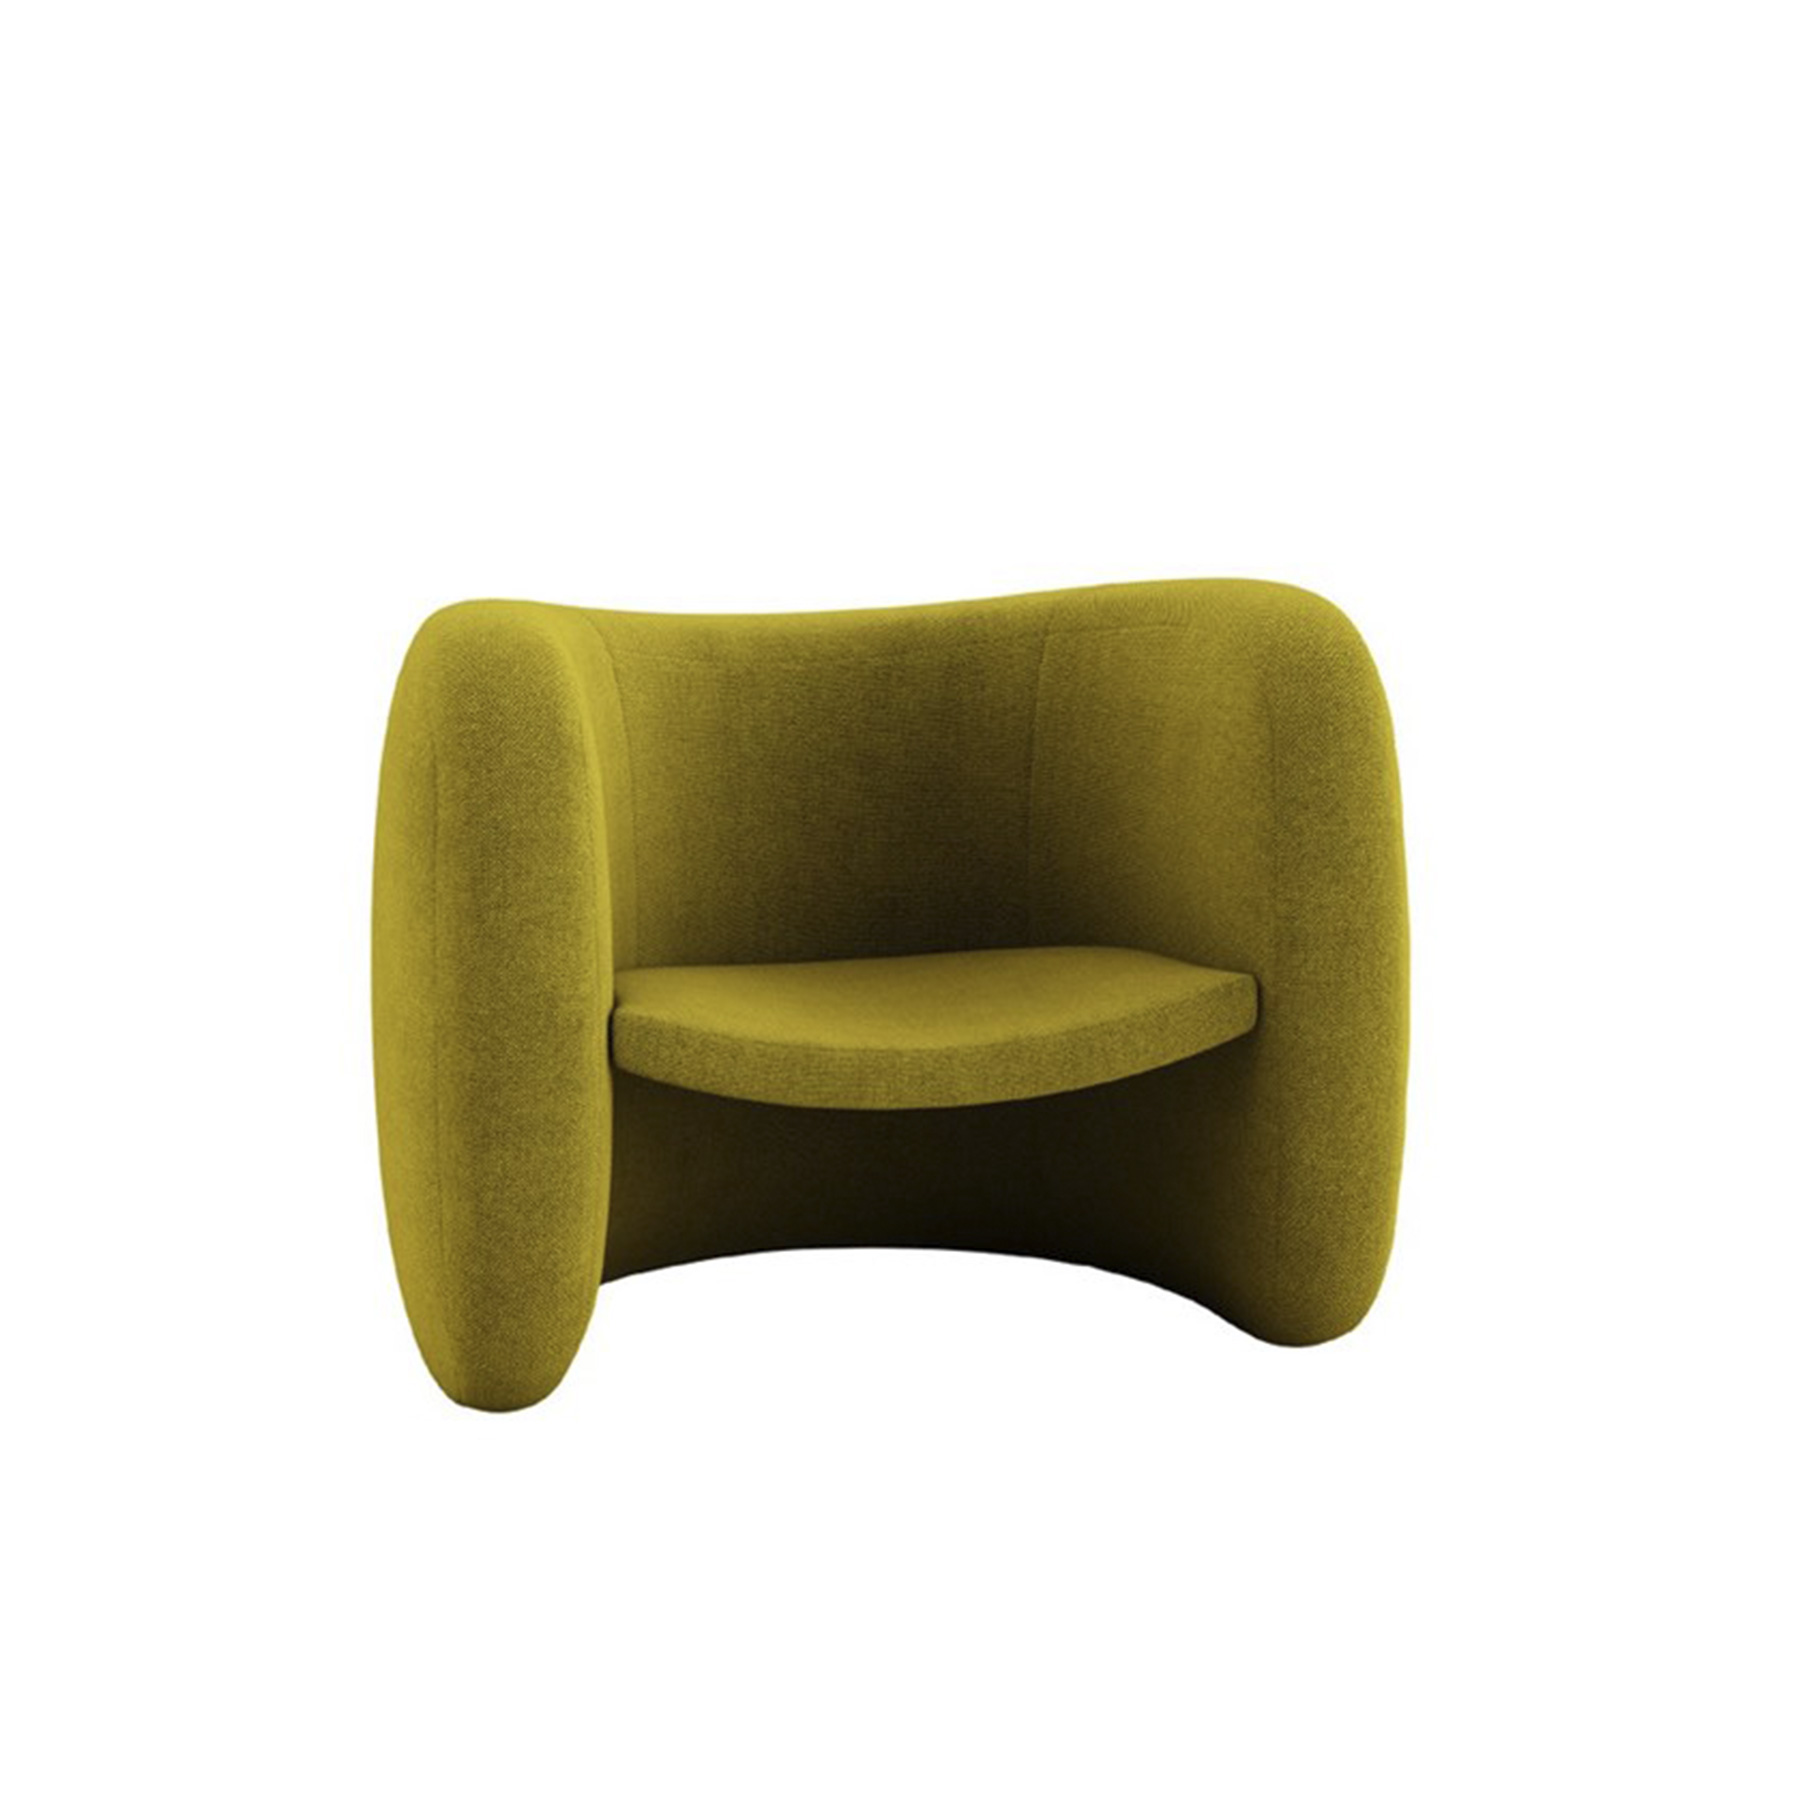 Lagoa Lounge Armchair - Lagoa is an armchair with a soft and rounded volume that houses a suspended seat characterised by a distinct contrast, both in thickness and colour.‎ The extremities of this seat are inserted into the hips of the structure sliding into an all-encompassing embrace without the solution of continuity.‎ This piece is the epitome of brilliant creativity that takes inspiration from the softness of the local tradition – with a completely visionary spirit.‎ | Matter of Stuff